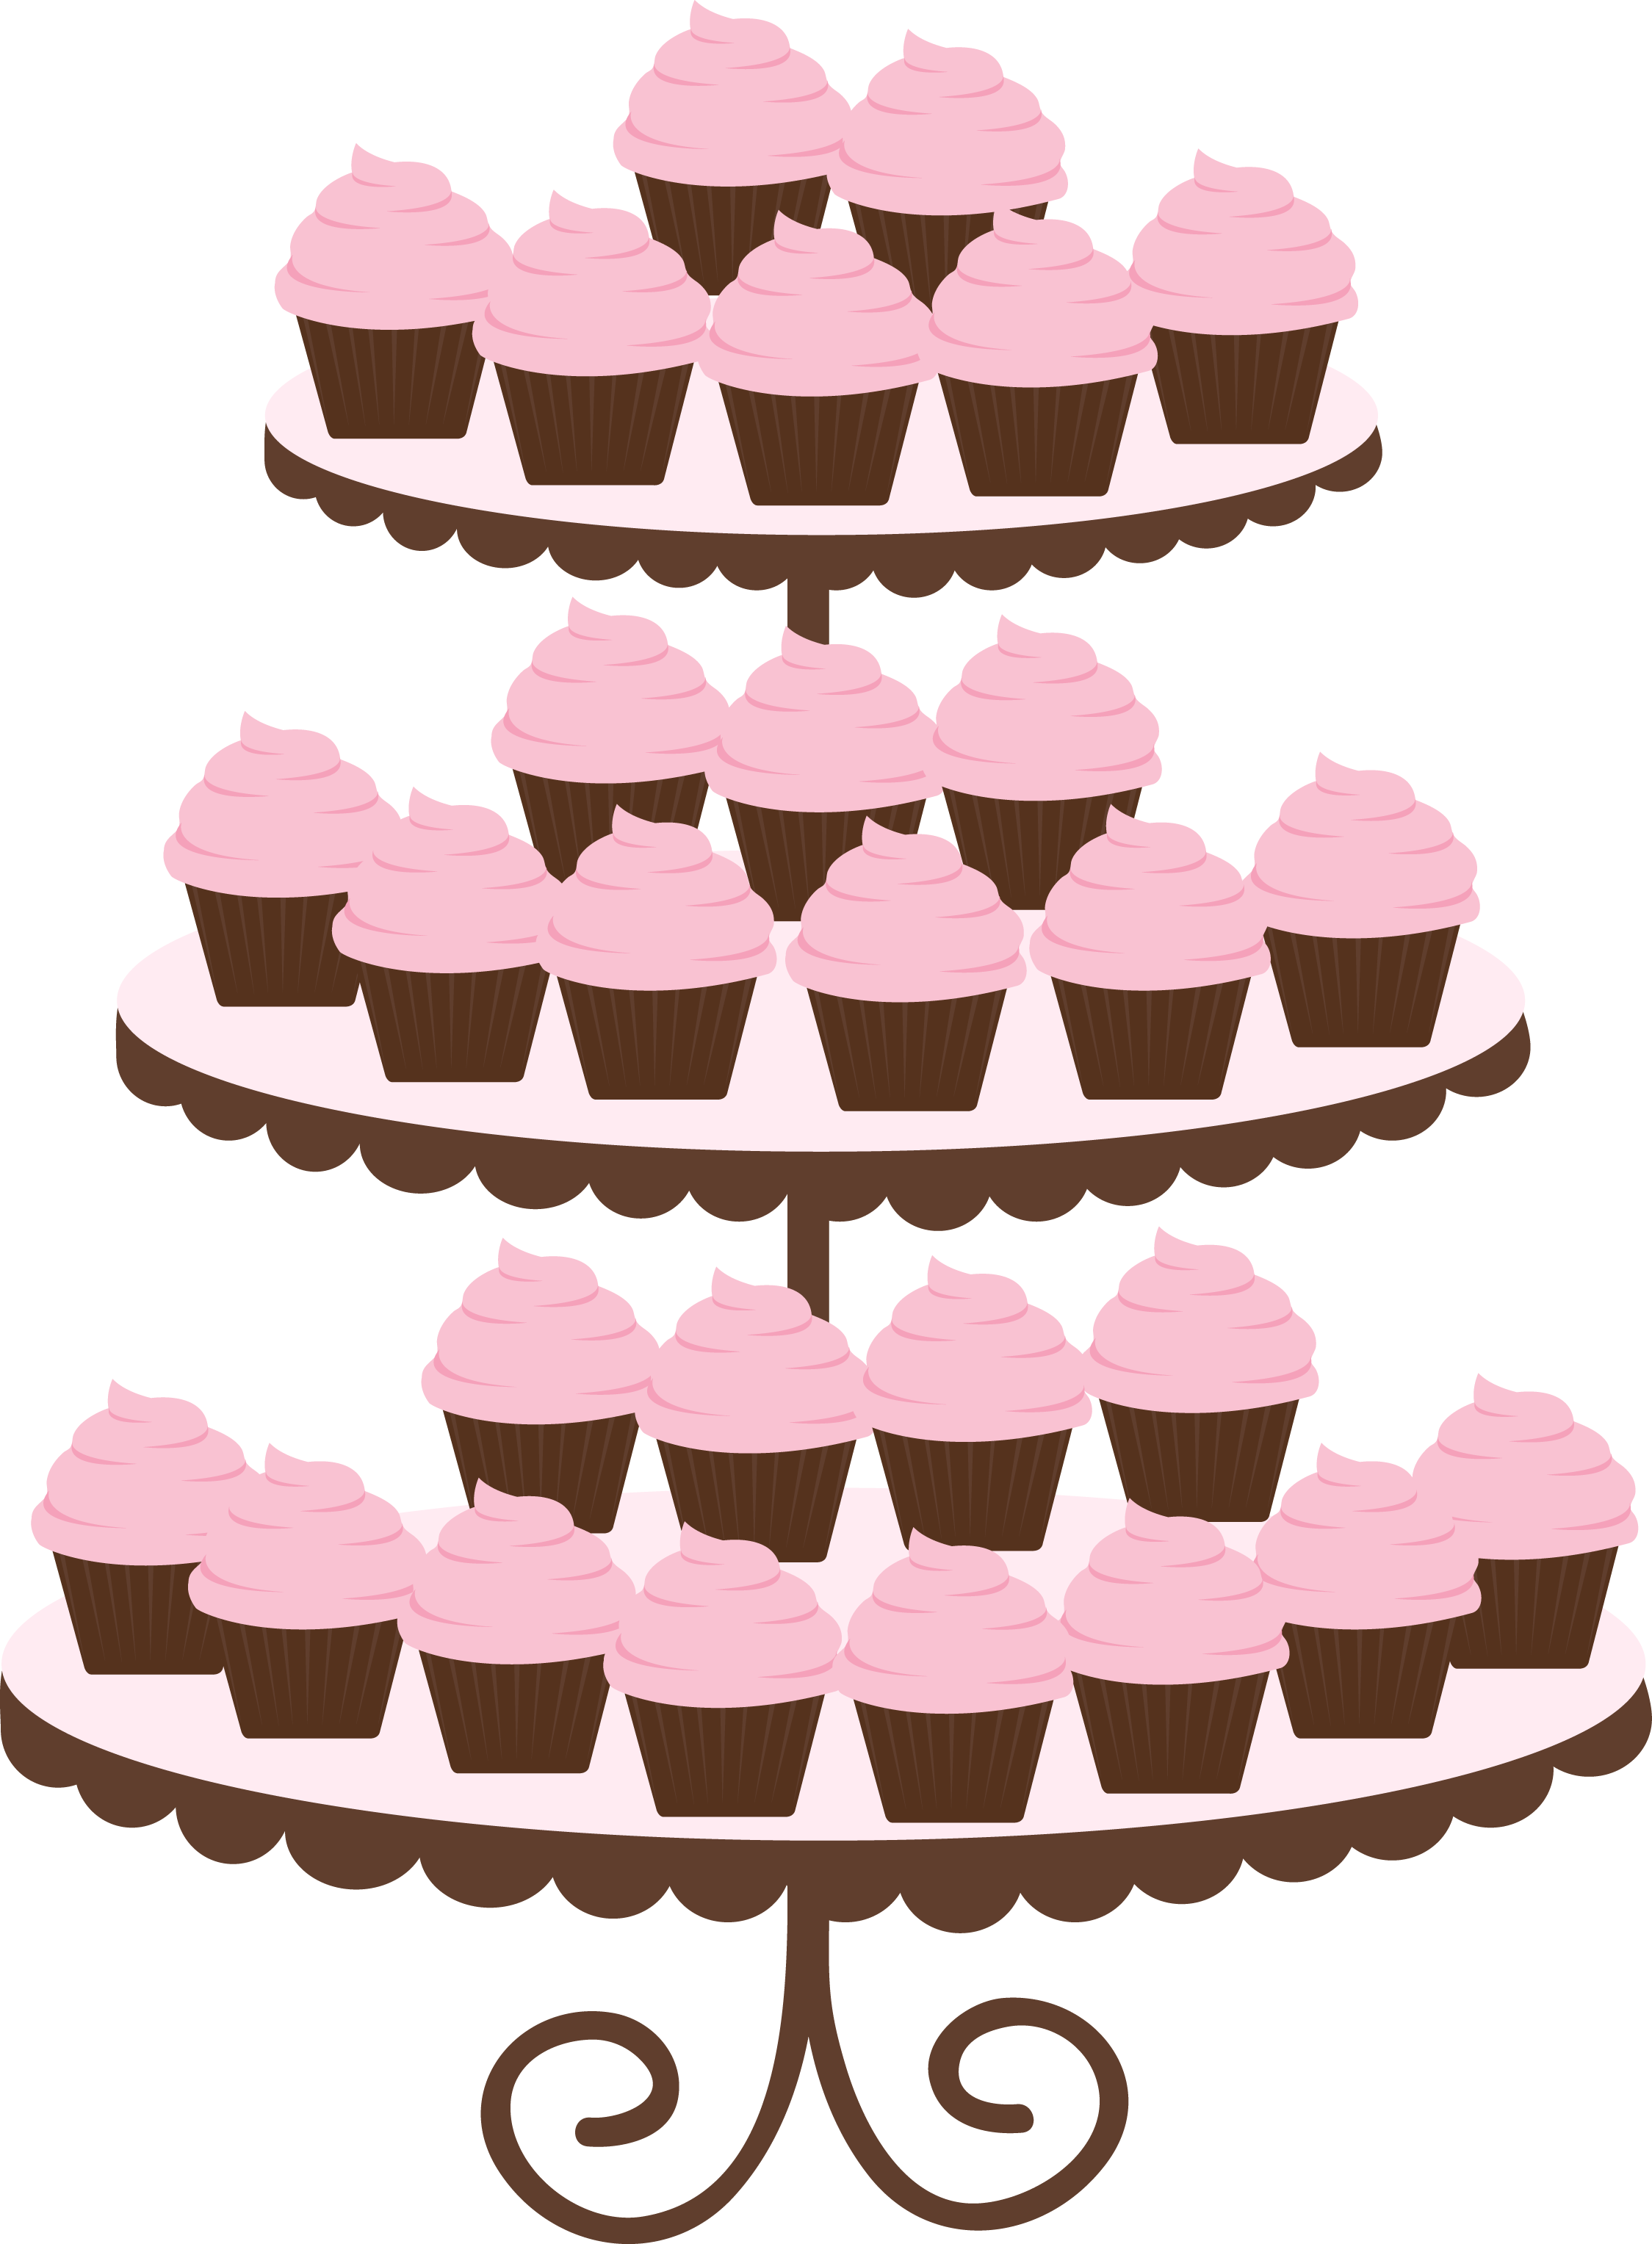 Fraction clipart cupcake. Photo by danimfalcao minus